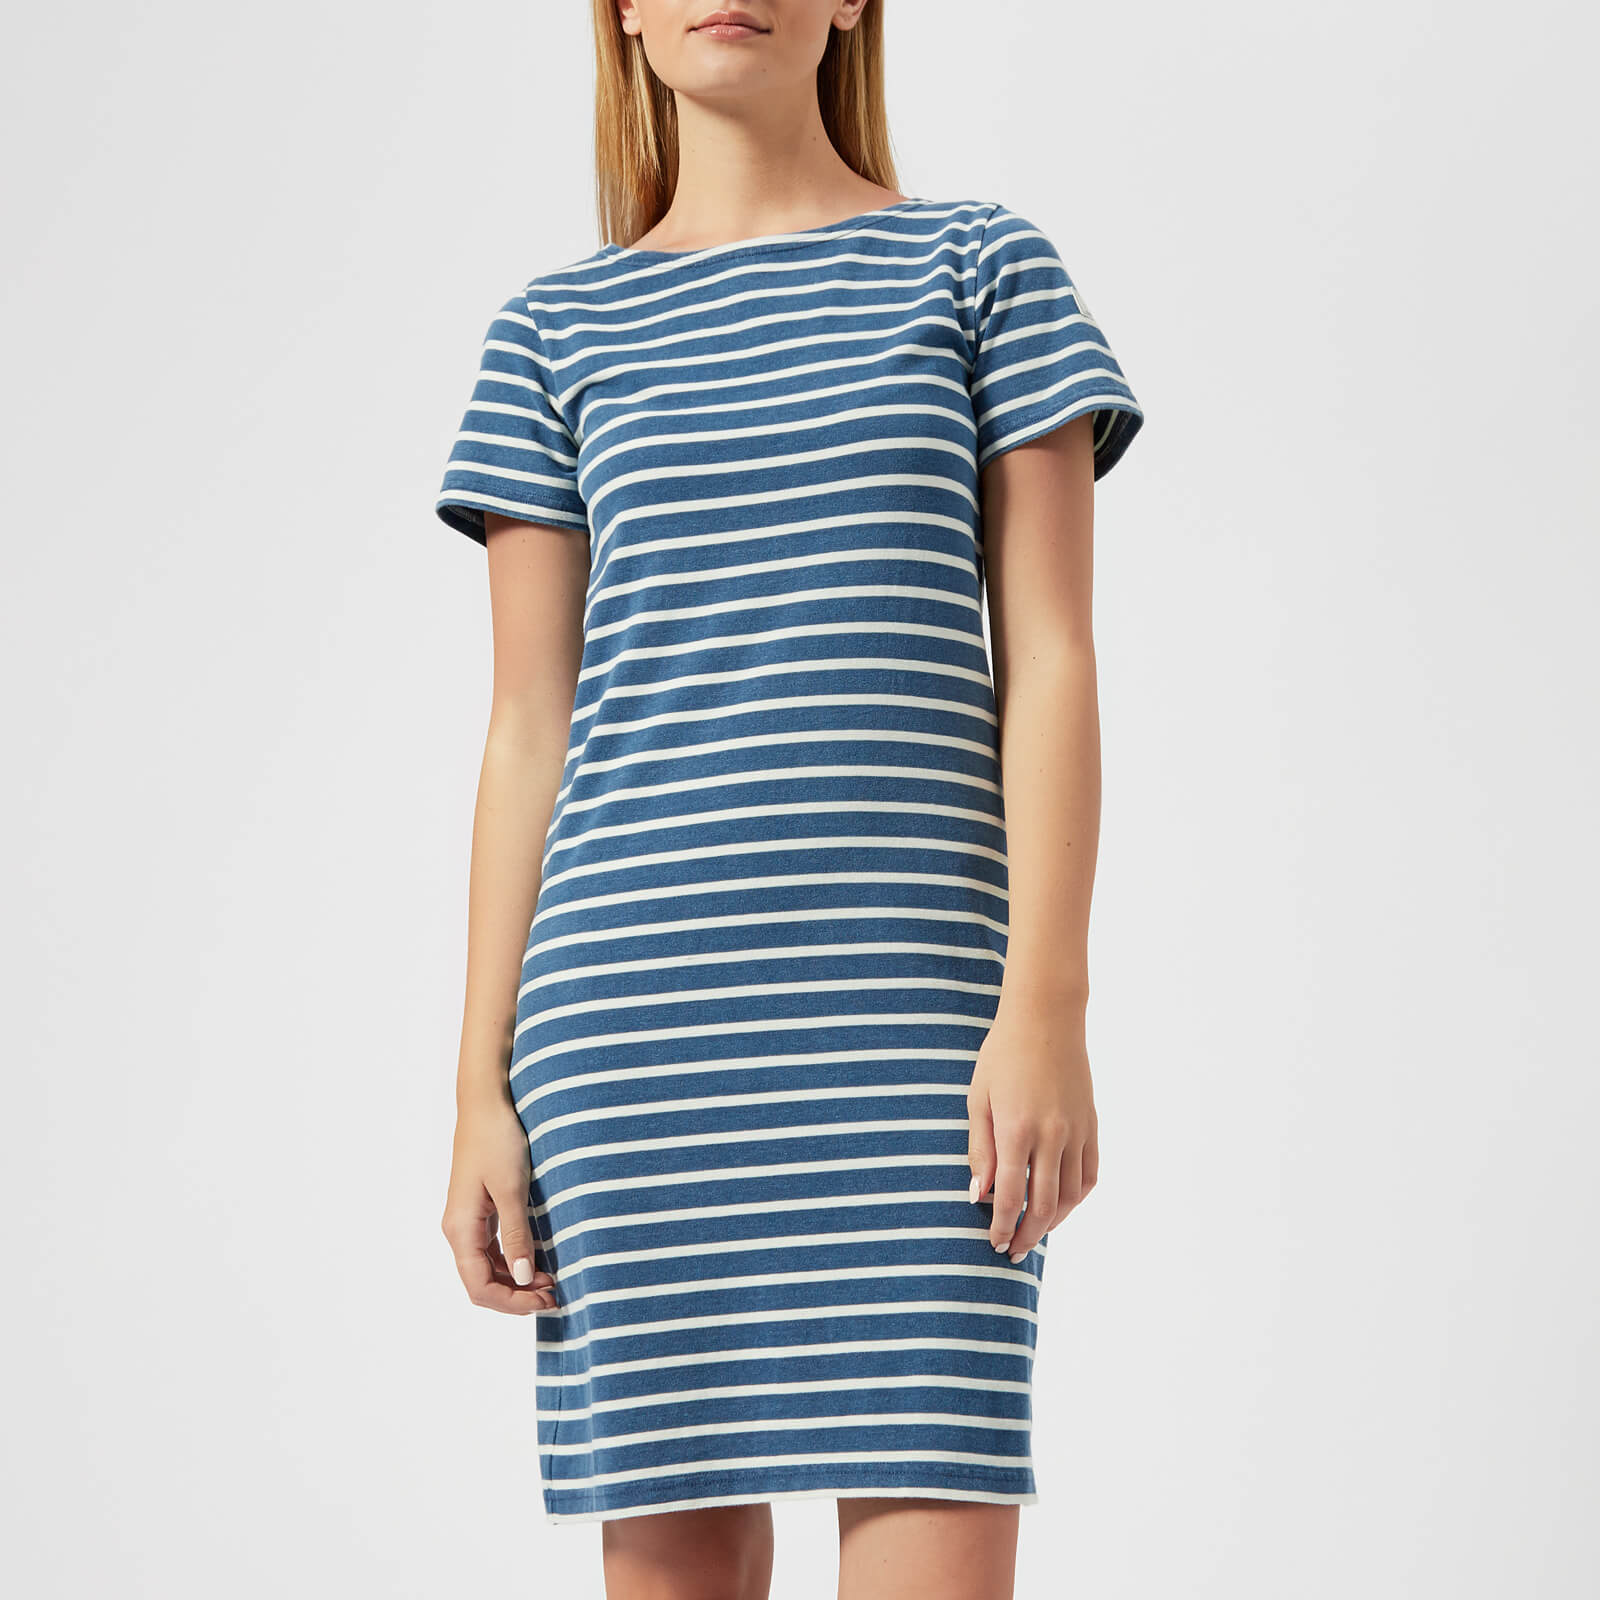 469b66f667a Joules Women's Riviera Short Sleeve Jersey Dress - Saltwash Womens Clothing  | TheHut.com